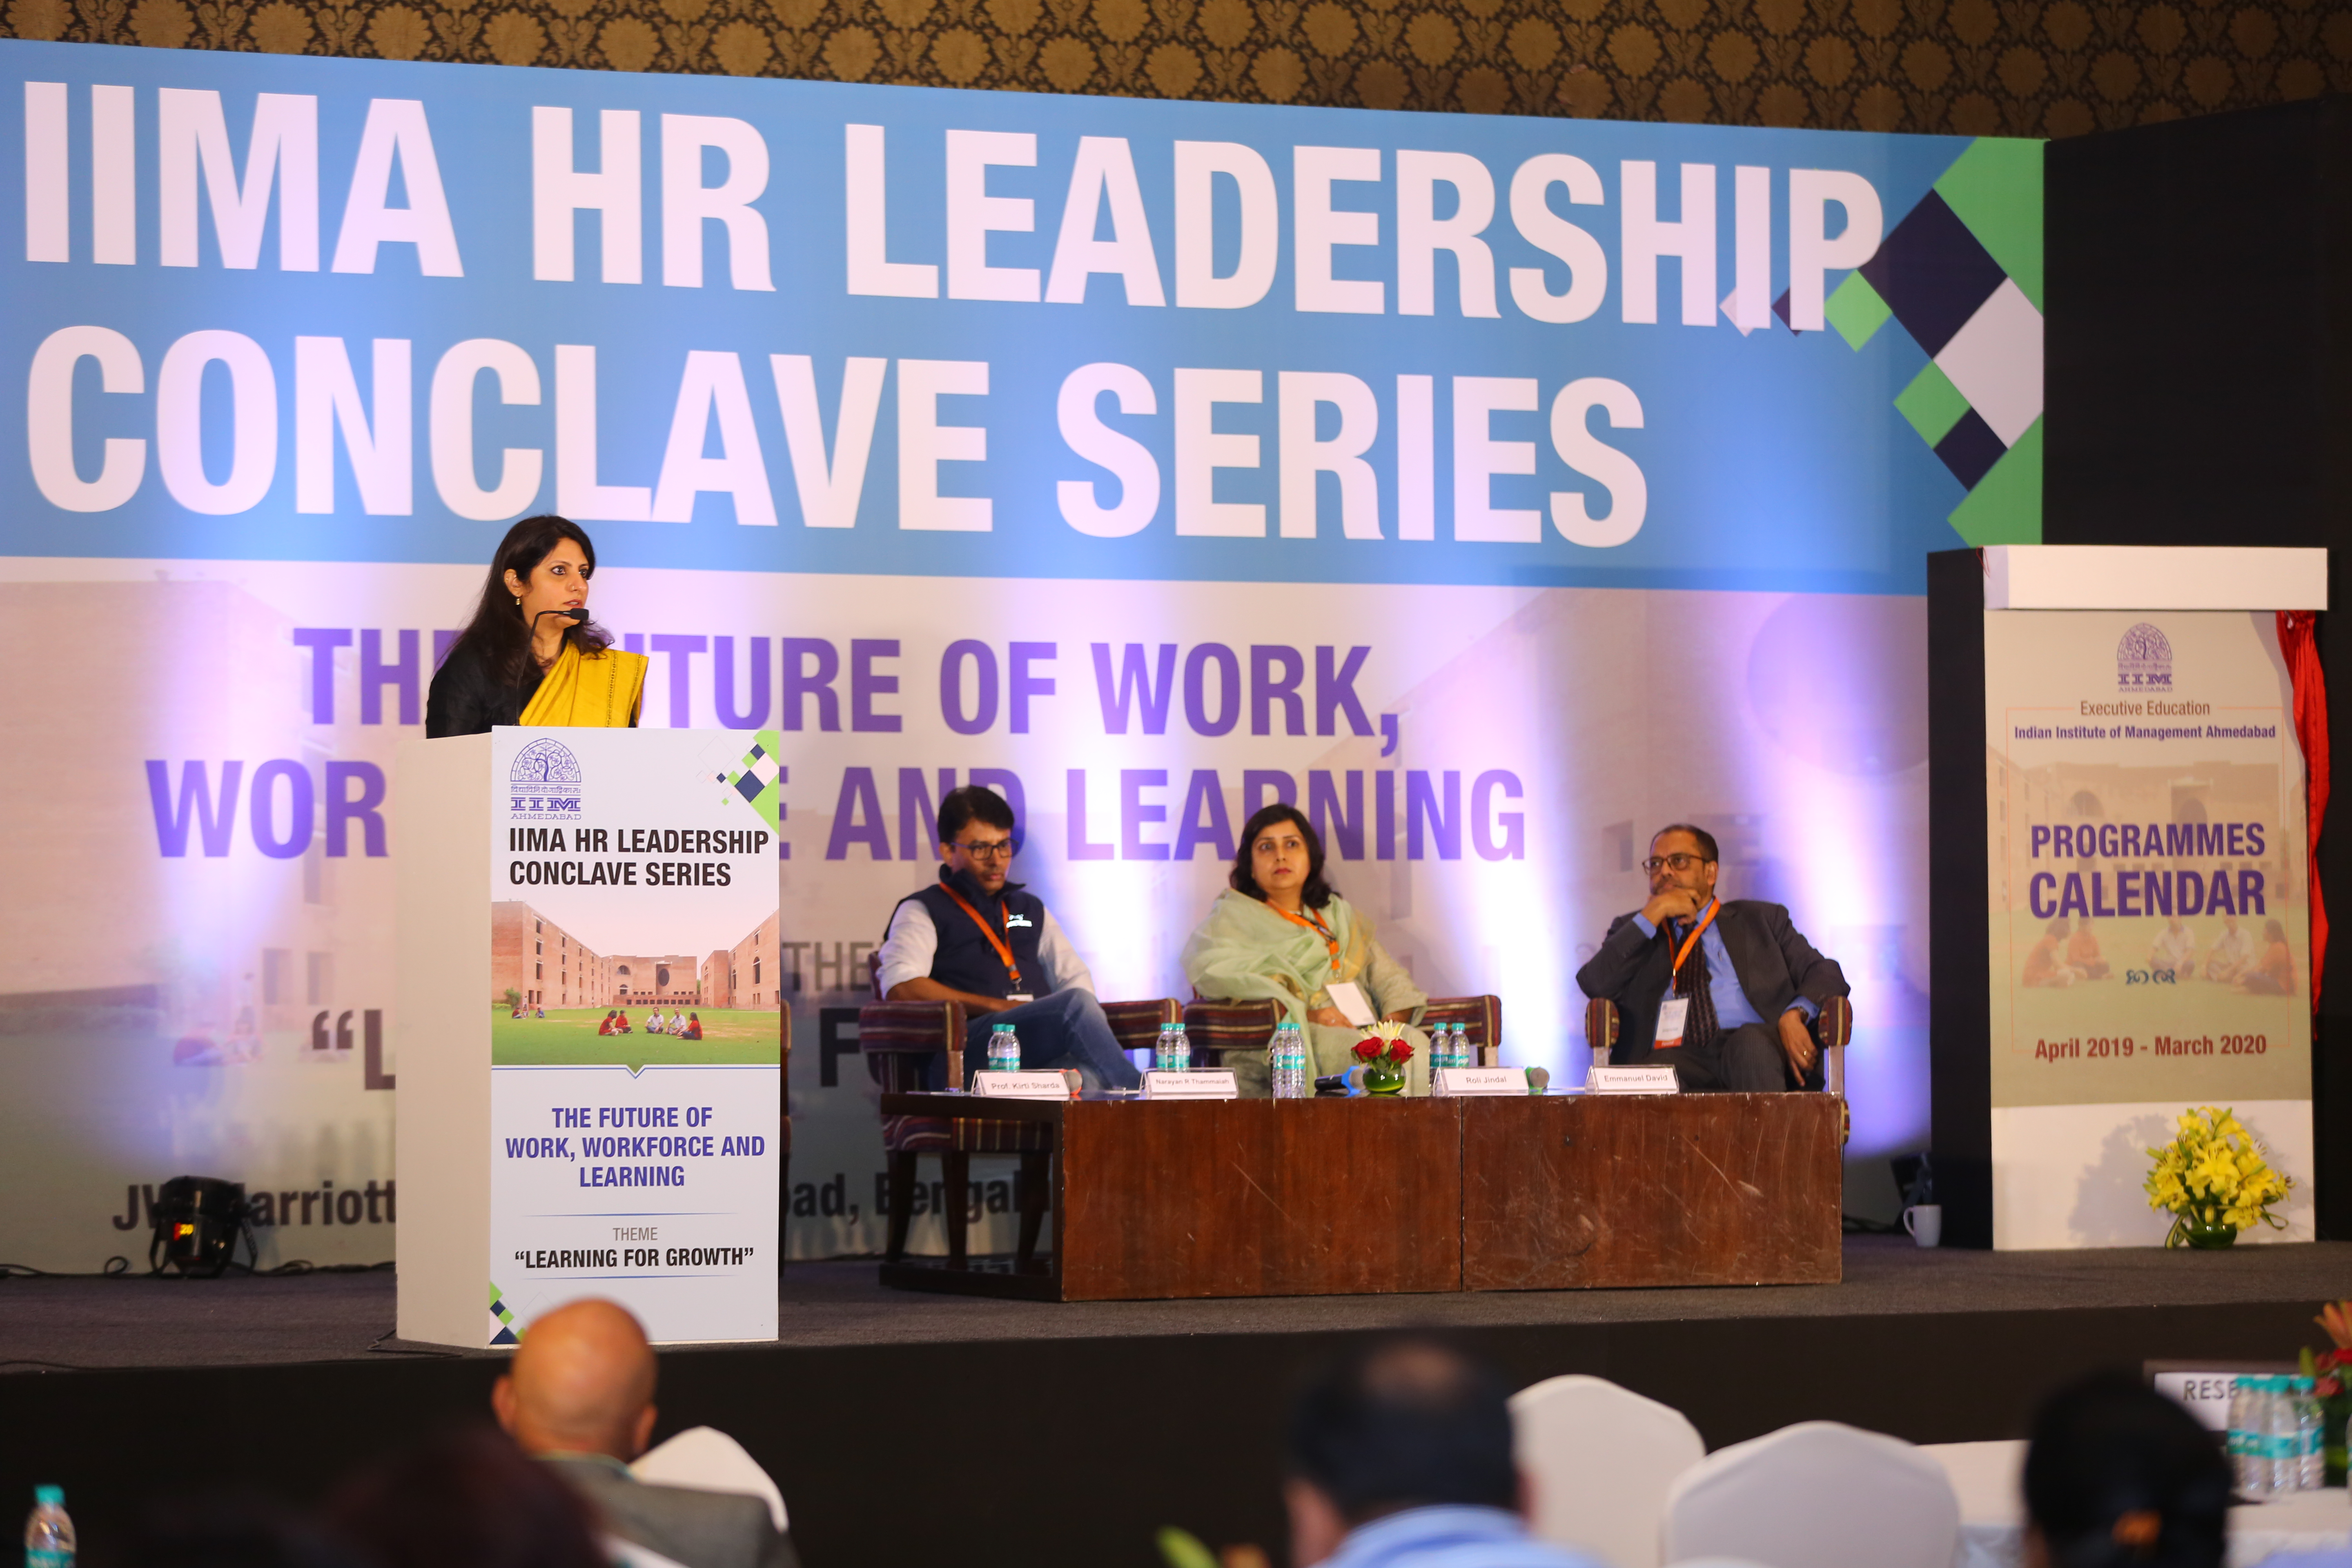 IIMA HR Conclave